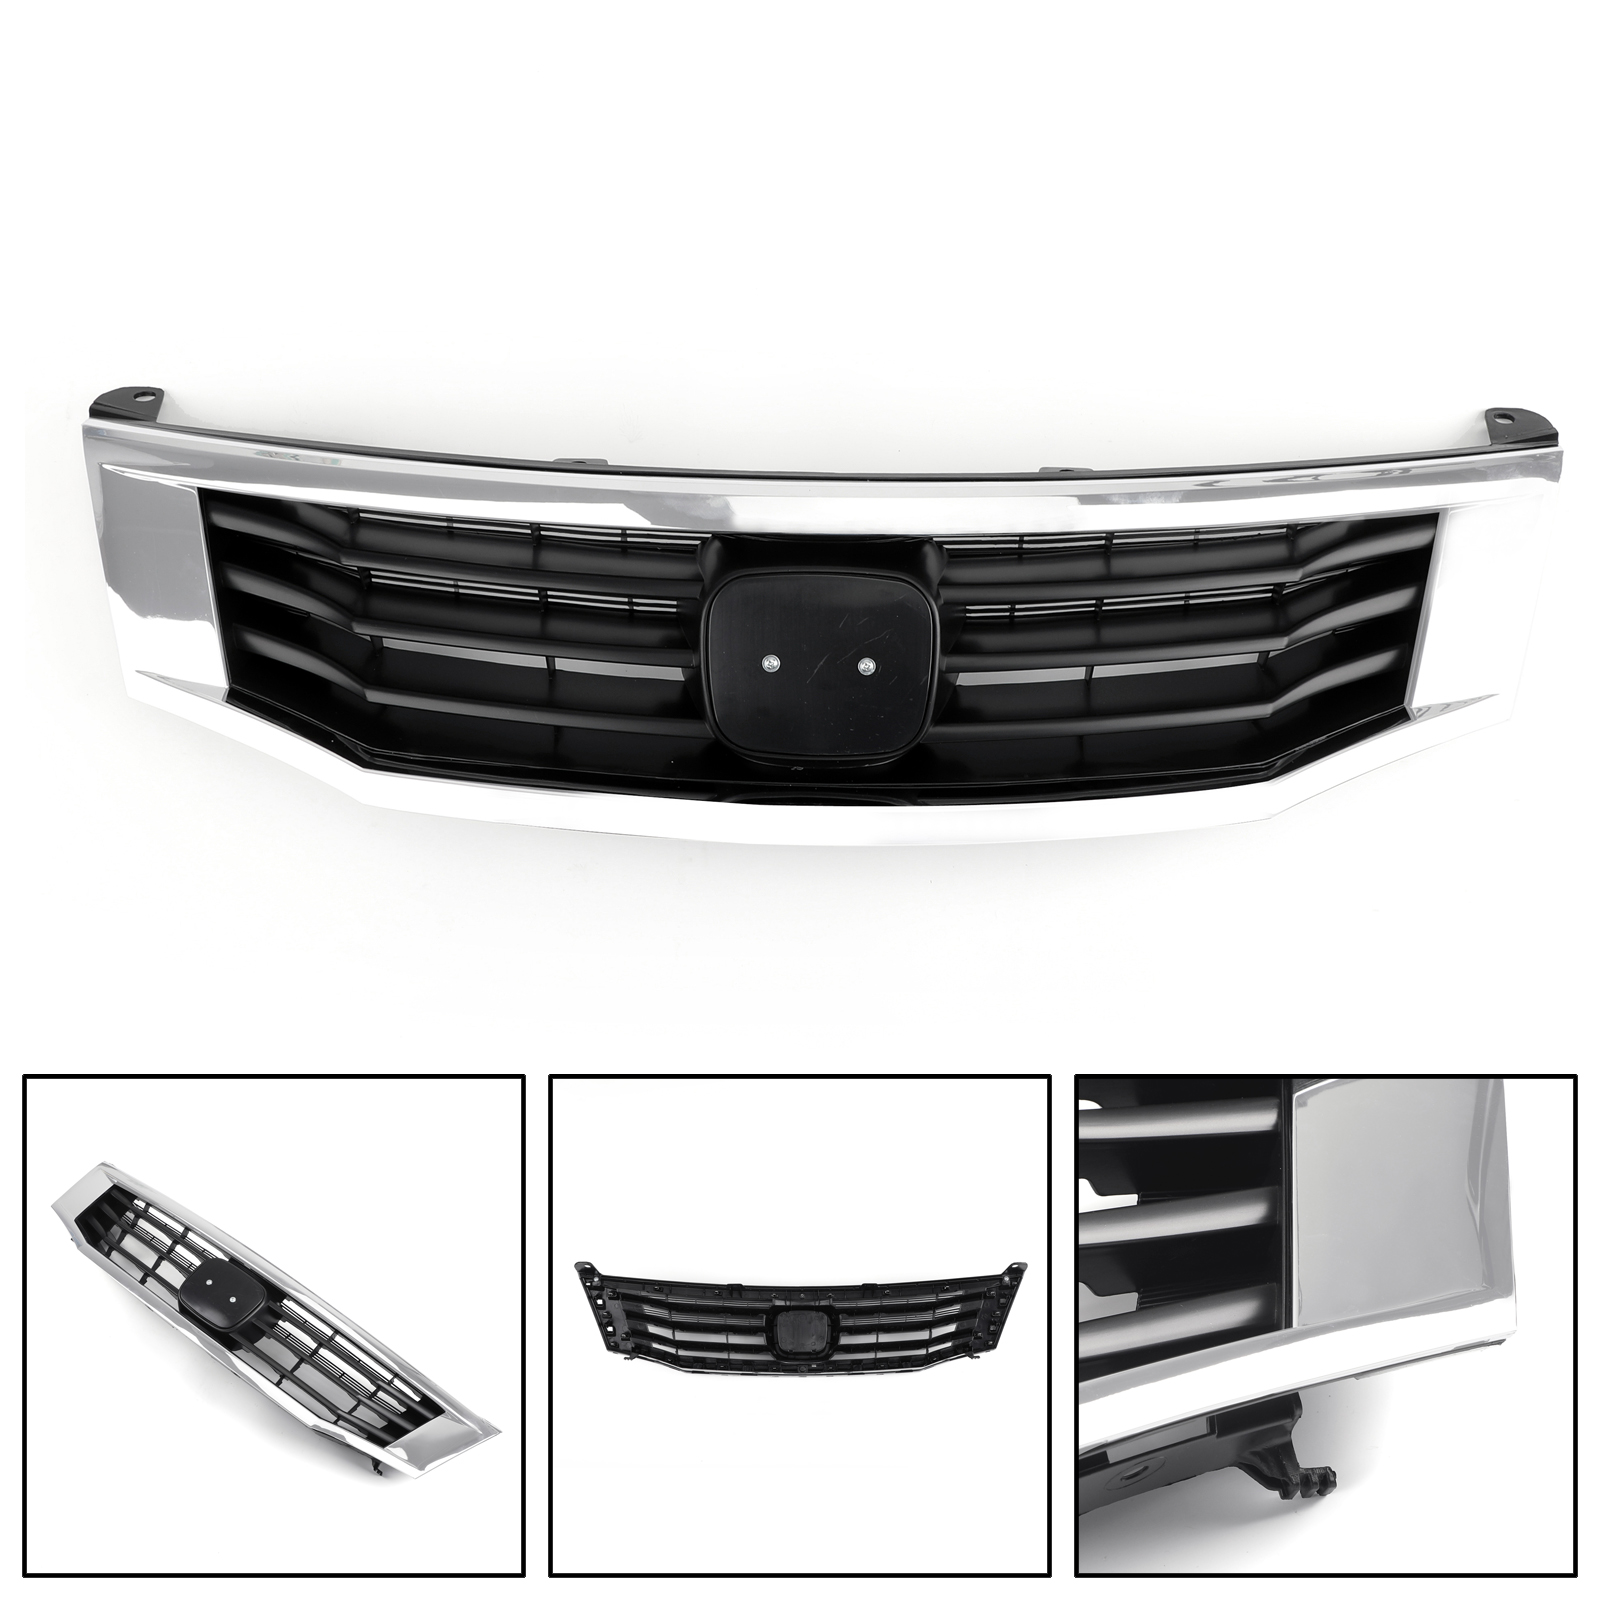 Areyourshop Front <font><b>Grille</b></font> Primed Black With Chrome Molding Trim For <font><b>Honda</b></font> <font><b>Accord</b></font> <font><b>2008</b></font>-2010 Upper Bumper <font><b>Grille</b></font> Car Accessories image